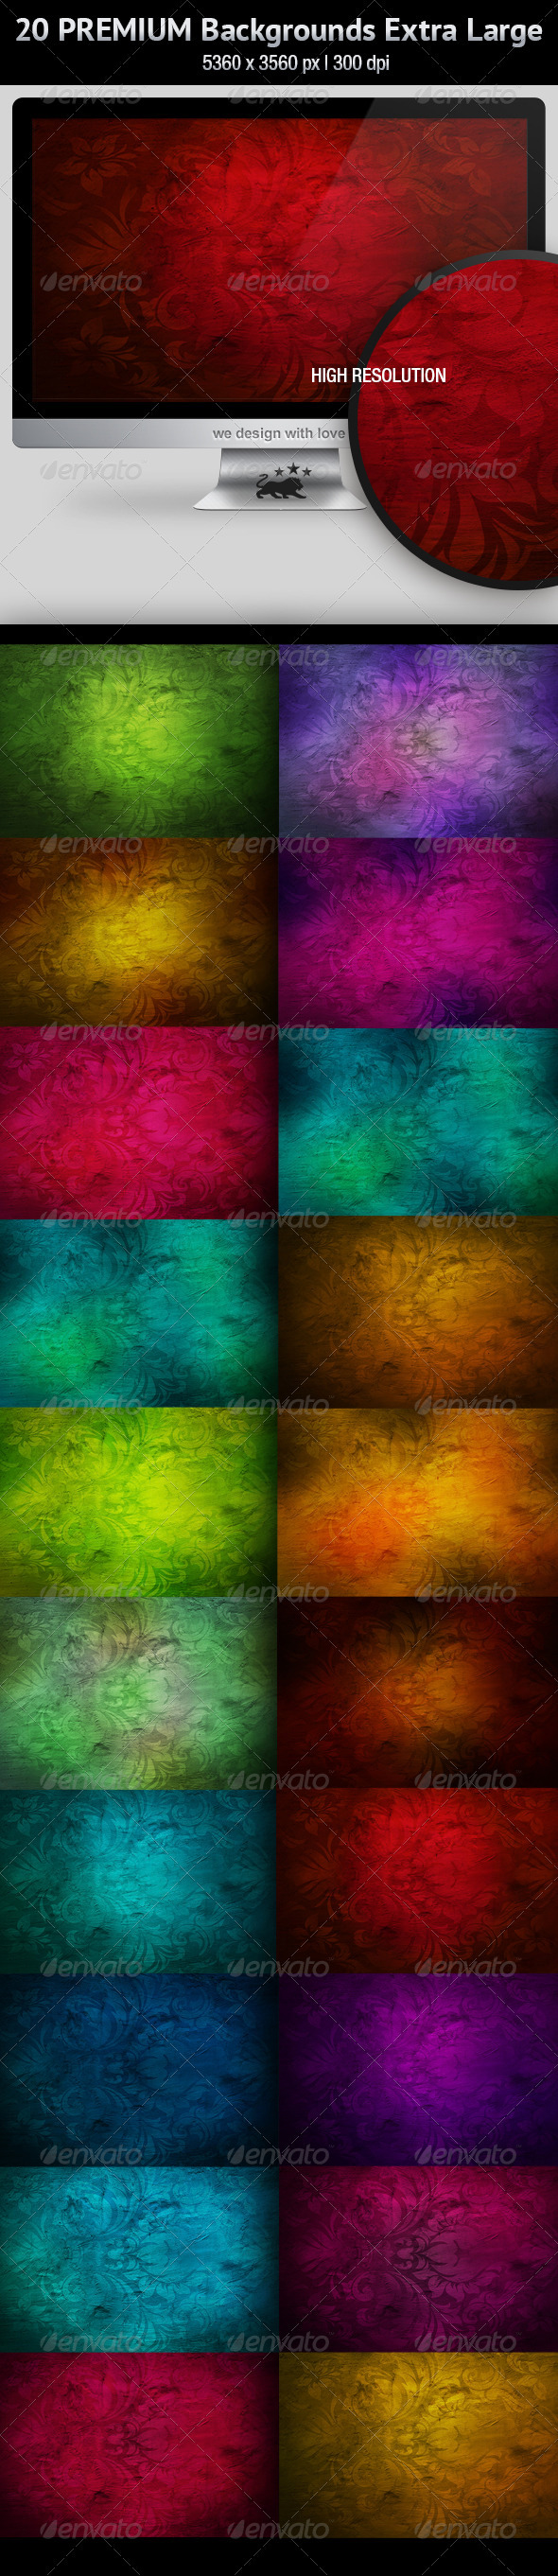 20 Premium Backgrounds · High Resolution - Abstract Backgrounds